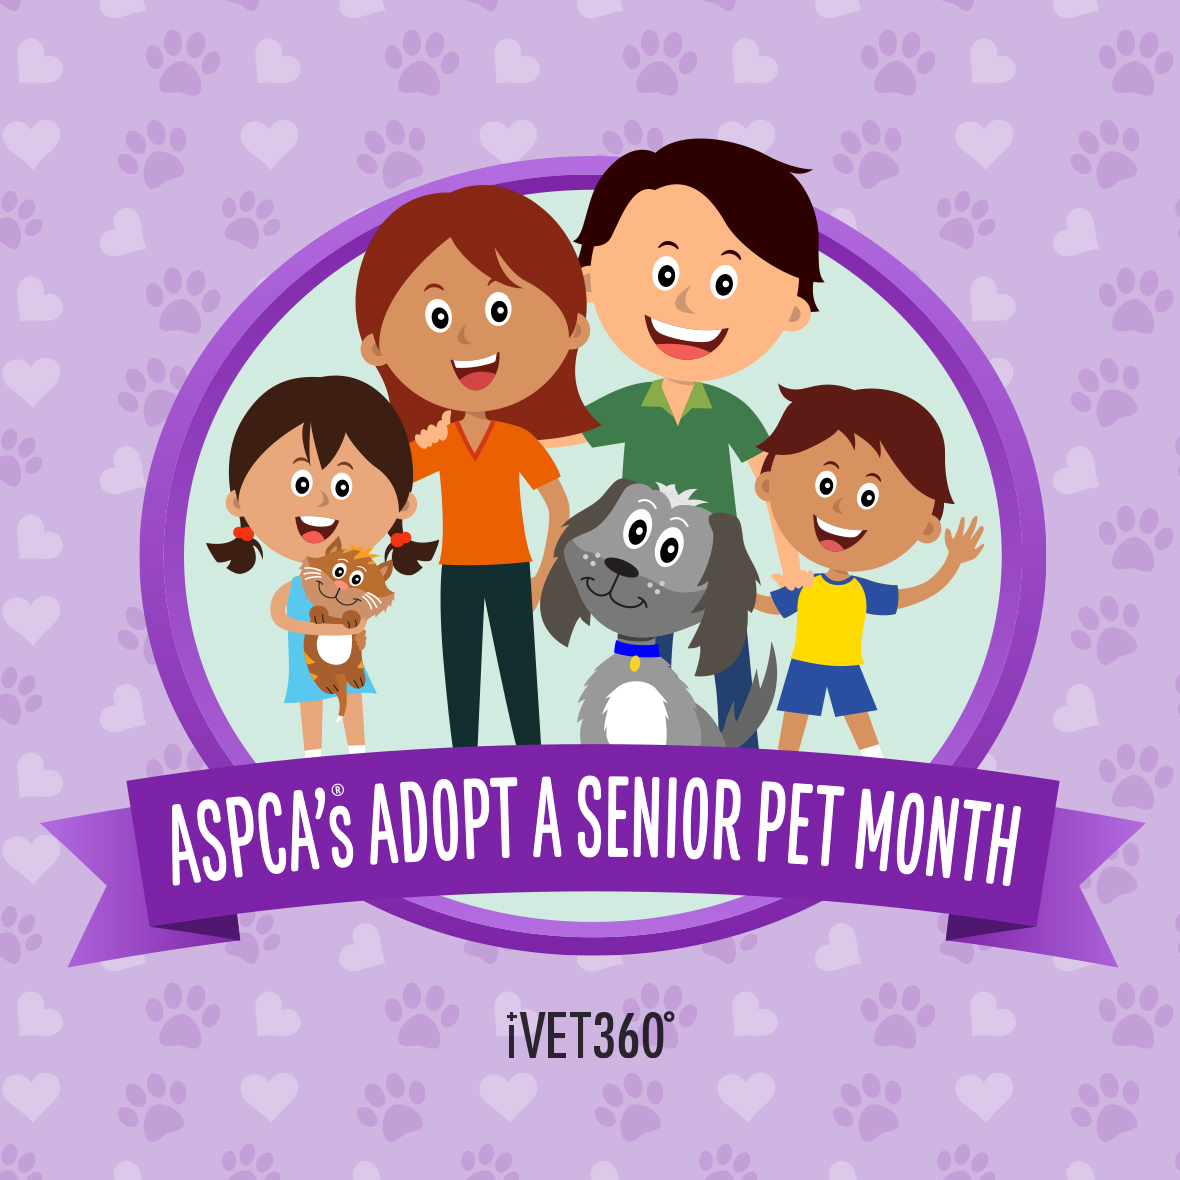 ASPCA's Adopt a Senior Pet Month